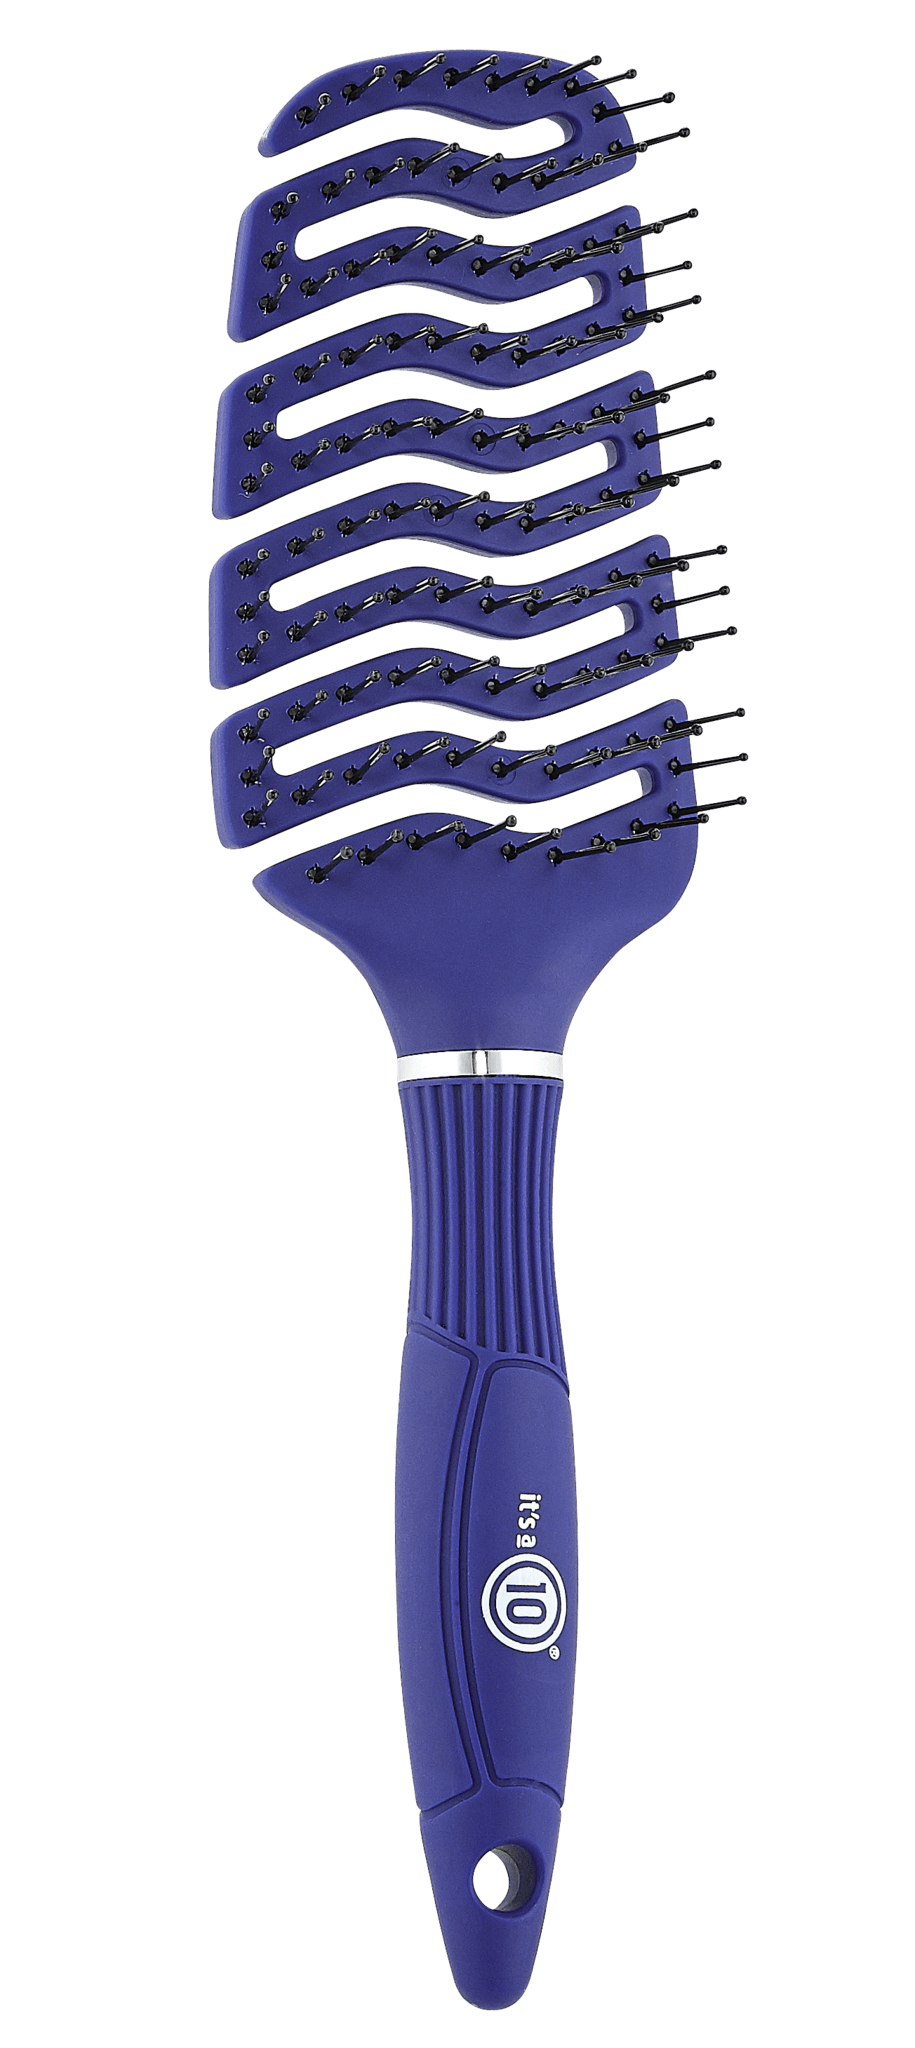 It's a 10 Miracle Detangling Brush